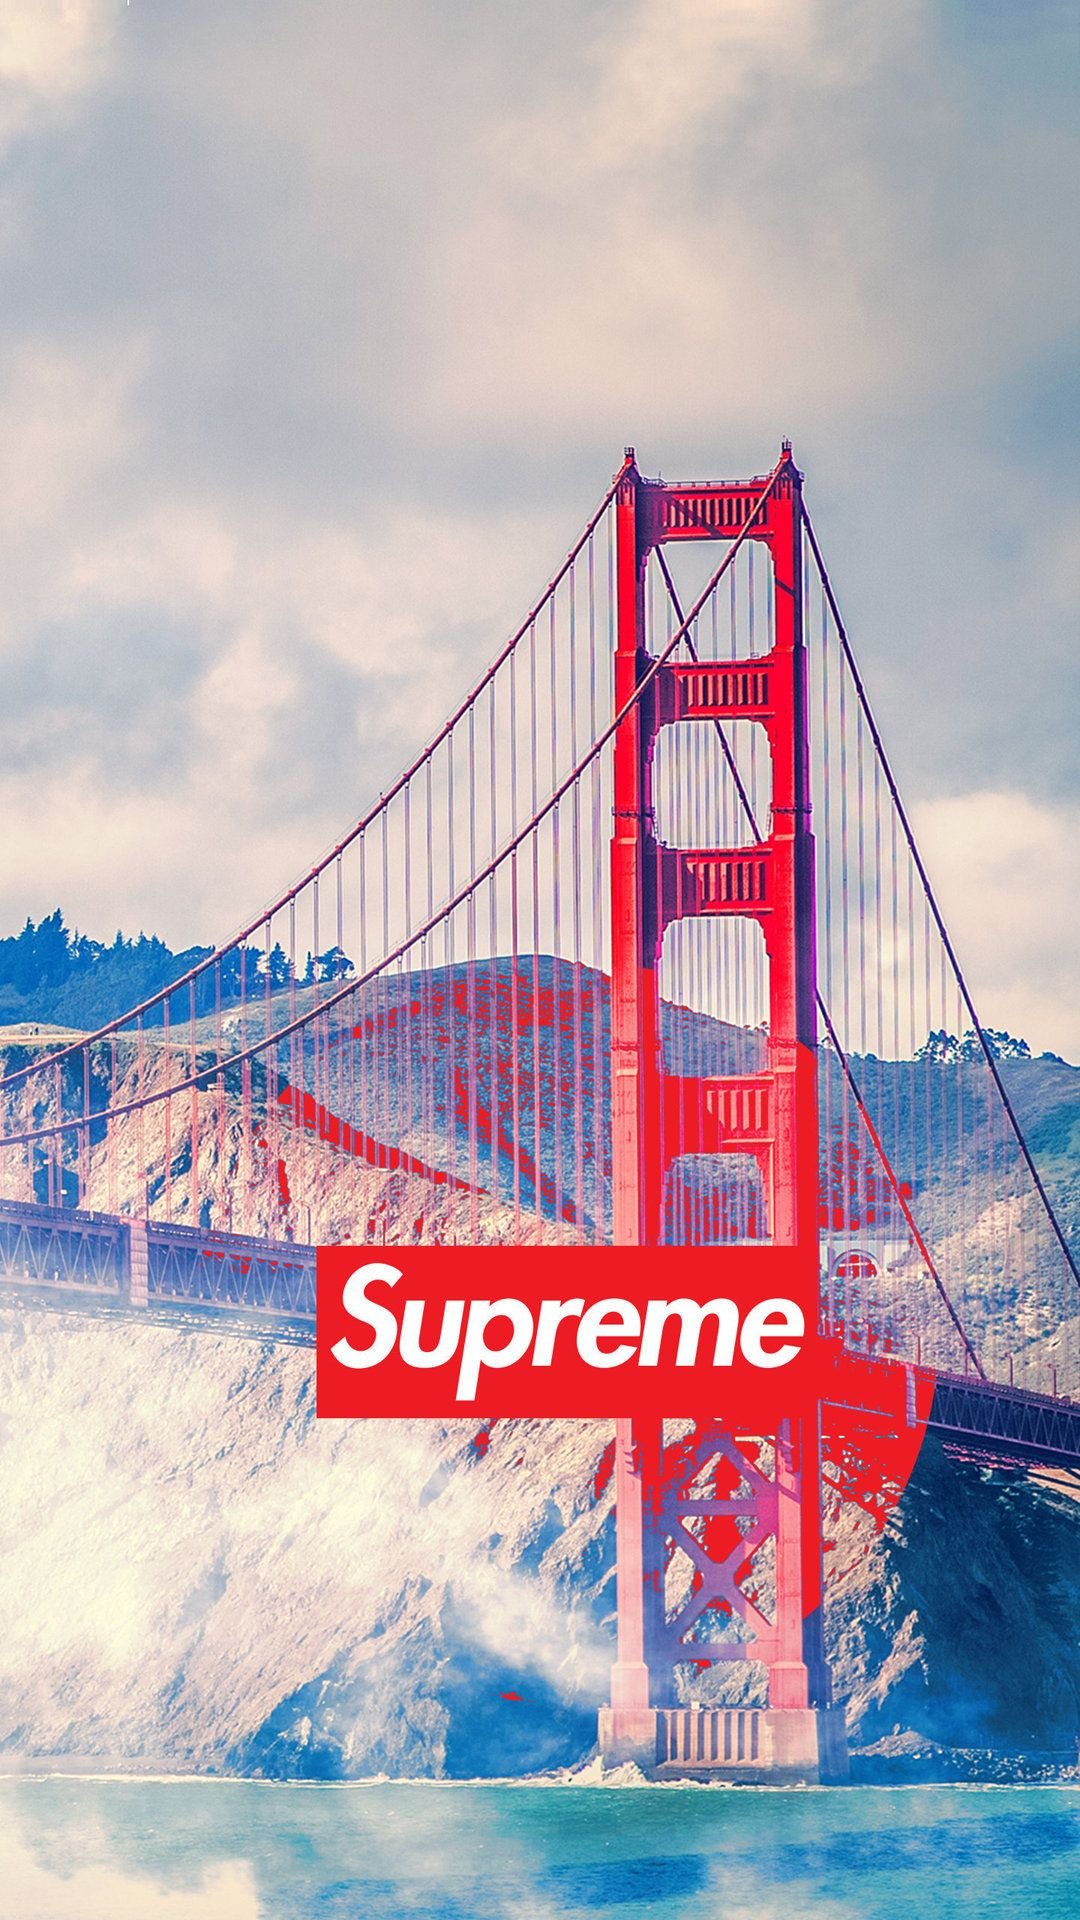 1080x1920 san francisco supreme - Tap to see more of the Supreme wallpapers ...